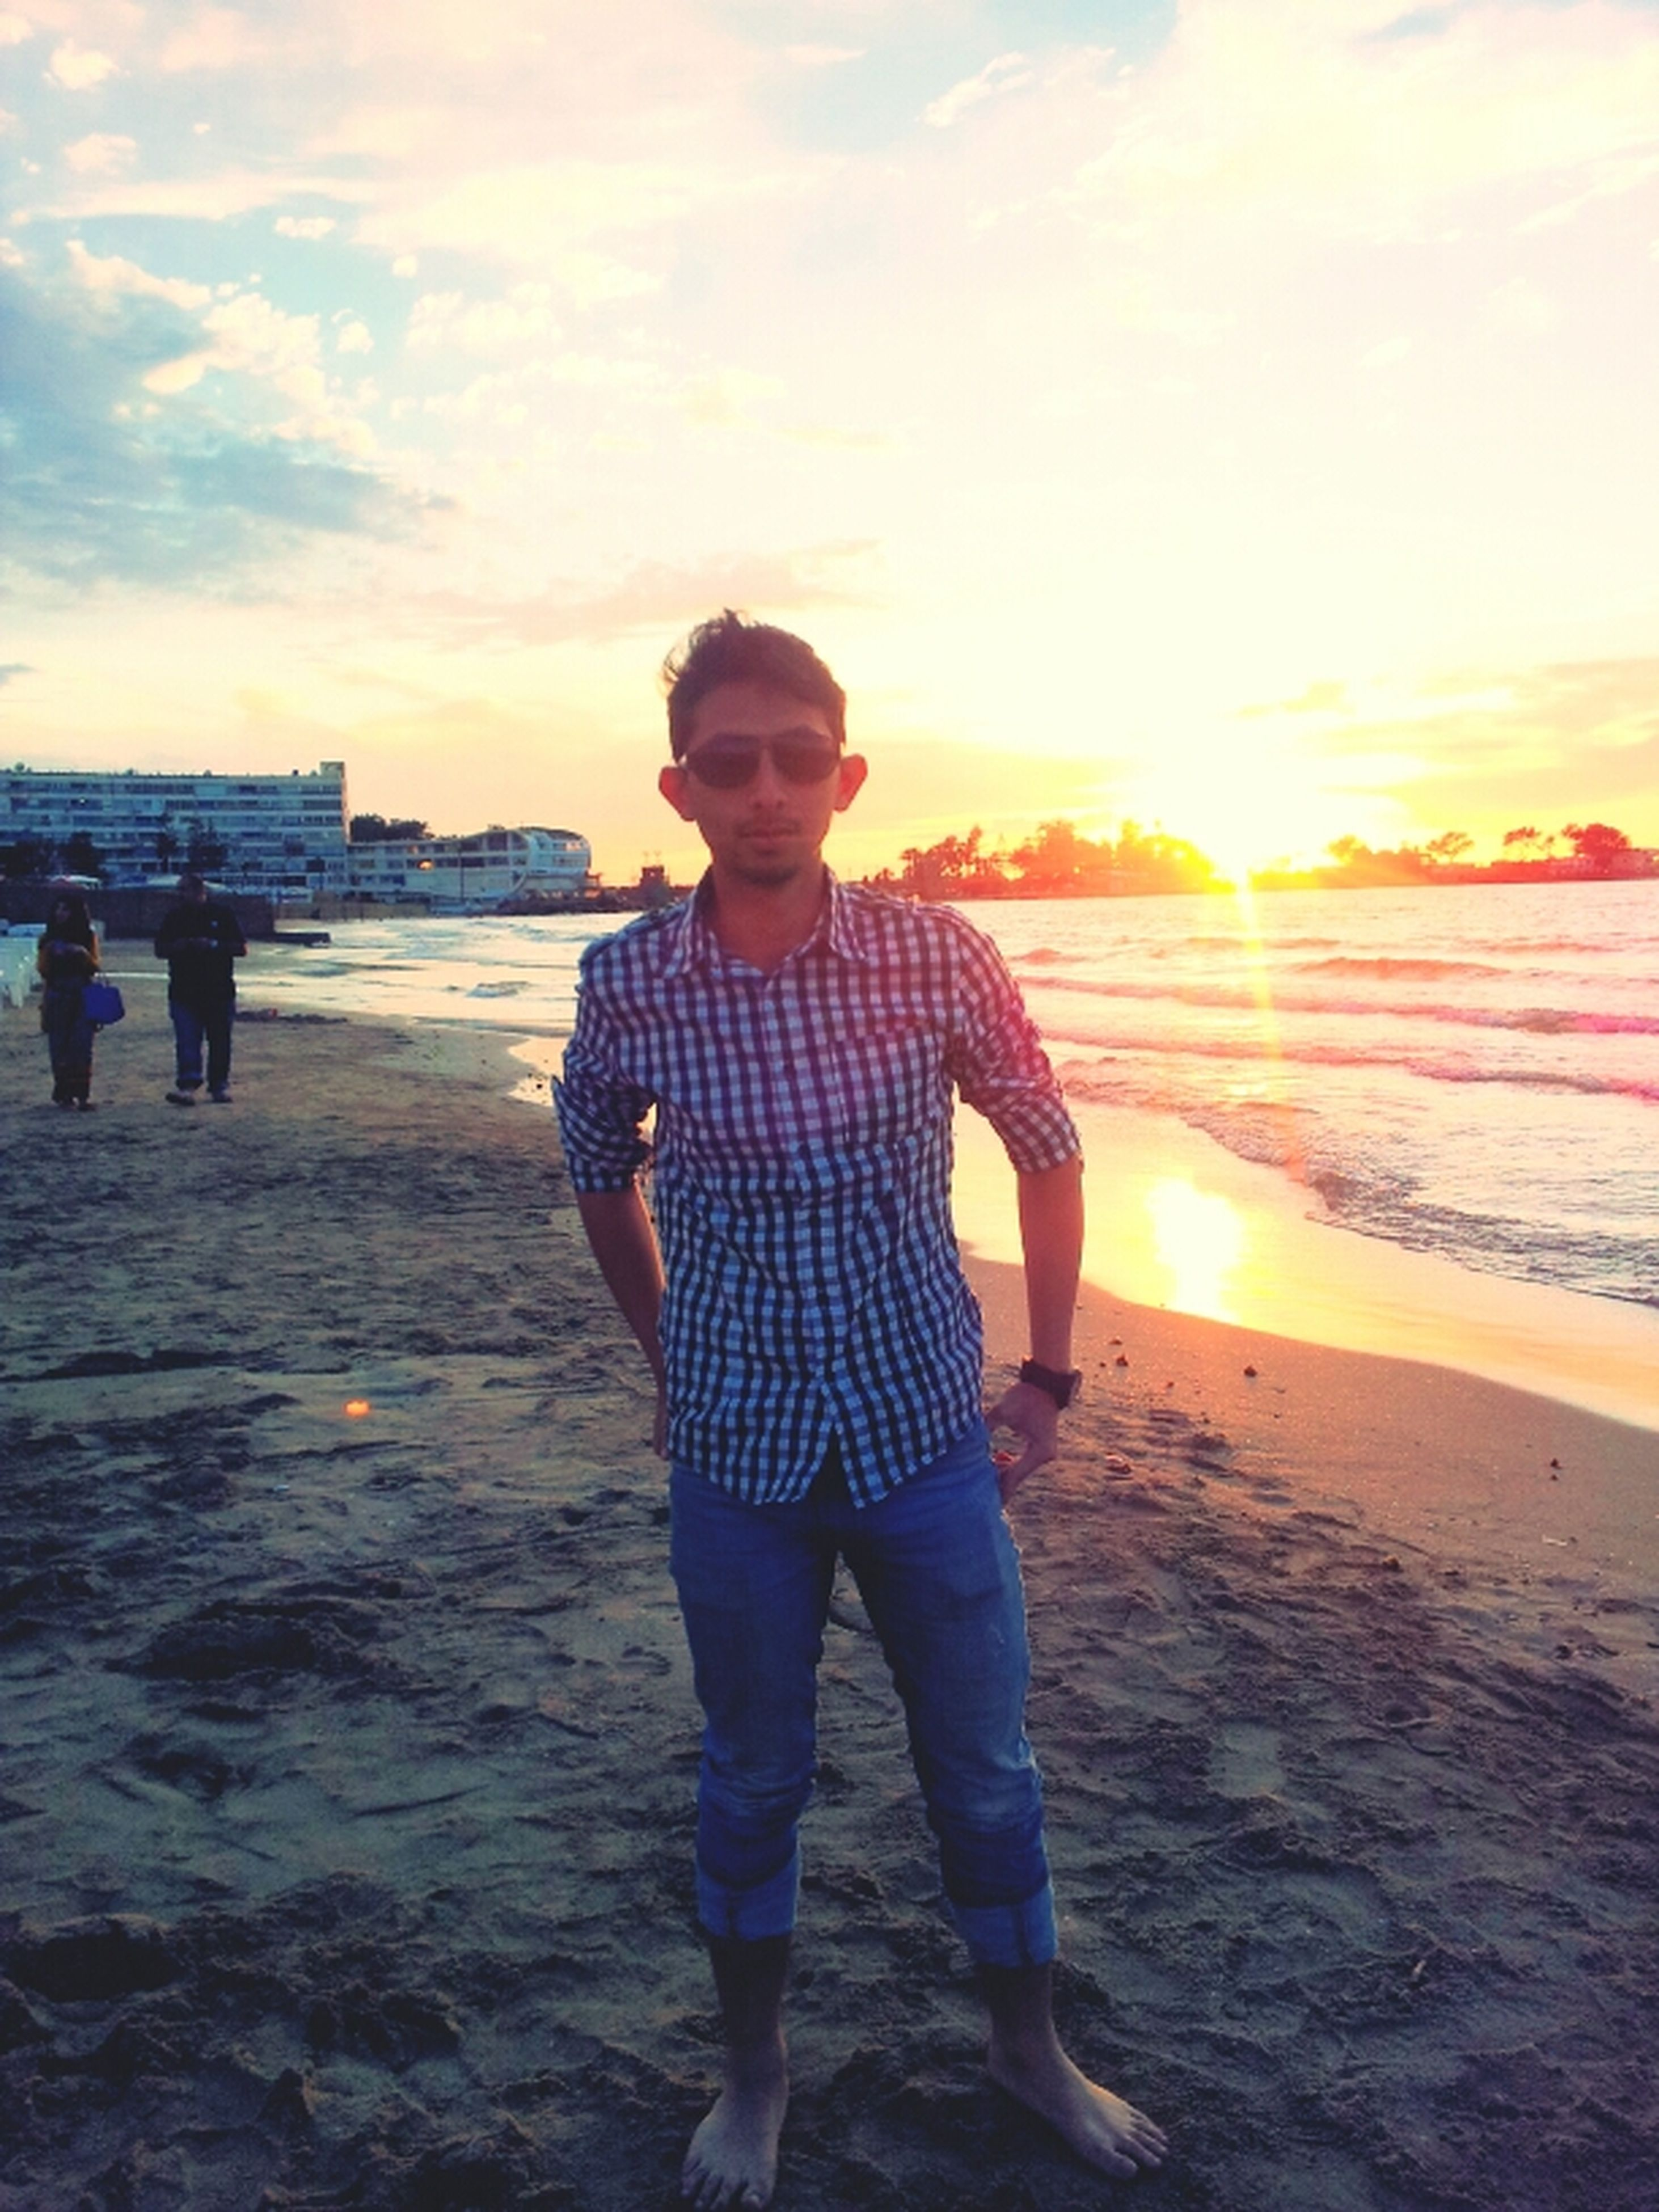 water, beach, sea, sunset, lifestyles, leisure activity, sky, shore, childhood, sand, person, full length, horizon over water, boys, standing, casual clothing, vacations, elementary age